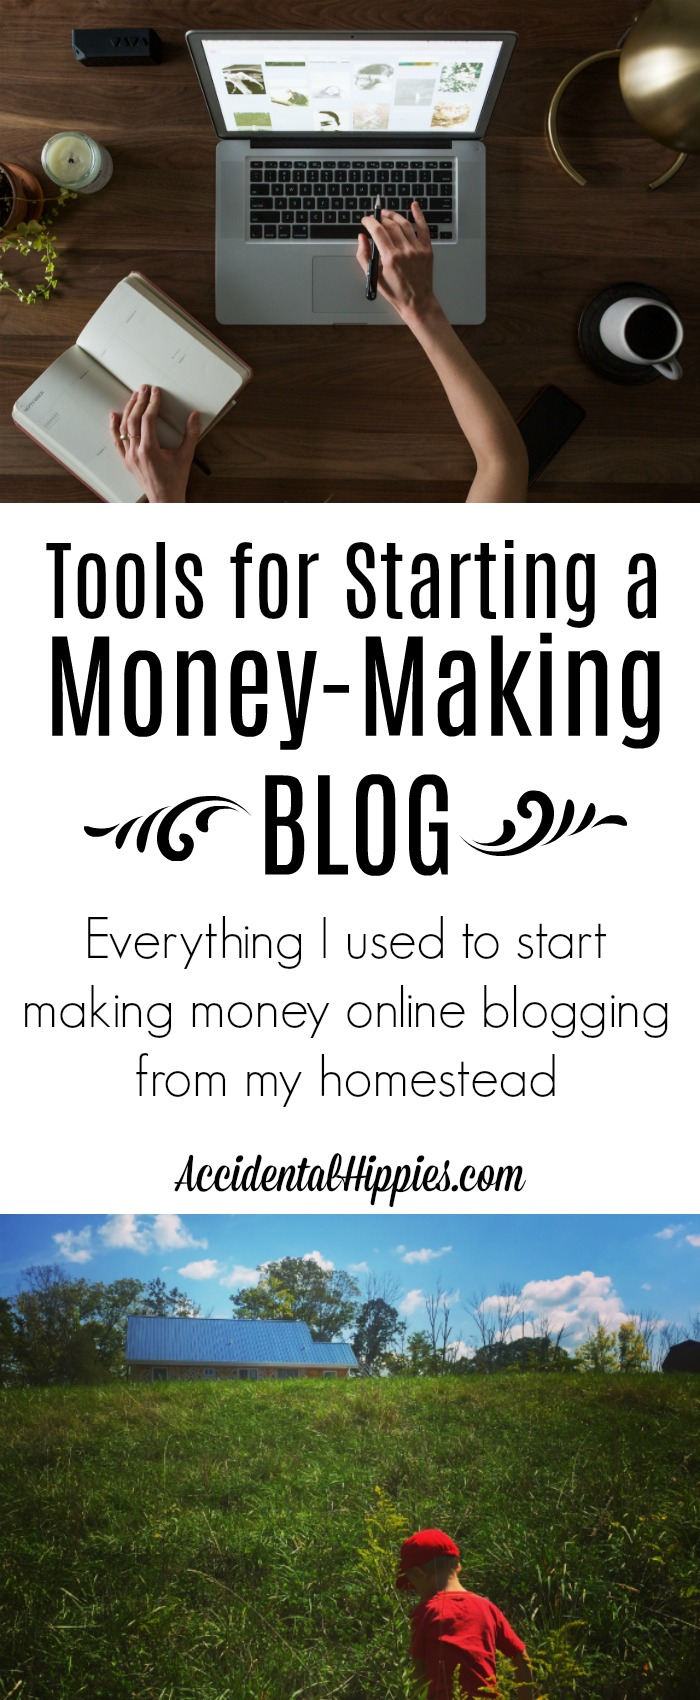 Starting a money making blog doesn't have to be hard. Learn about the tools I used to go from hobby blogging to making a real income online from my homestead.